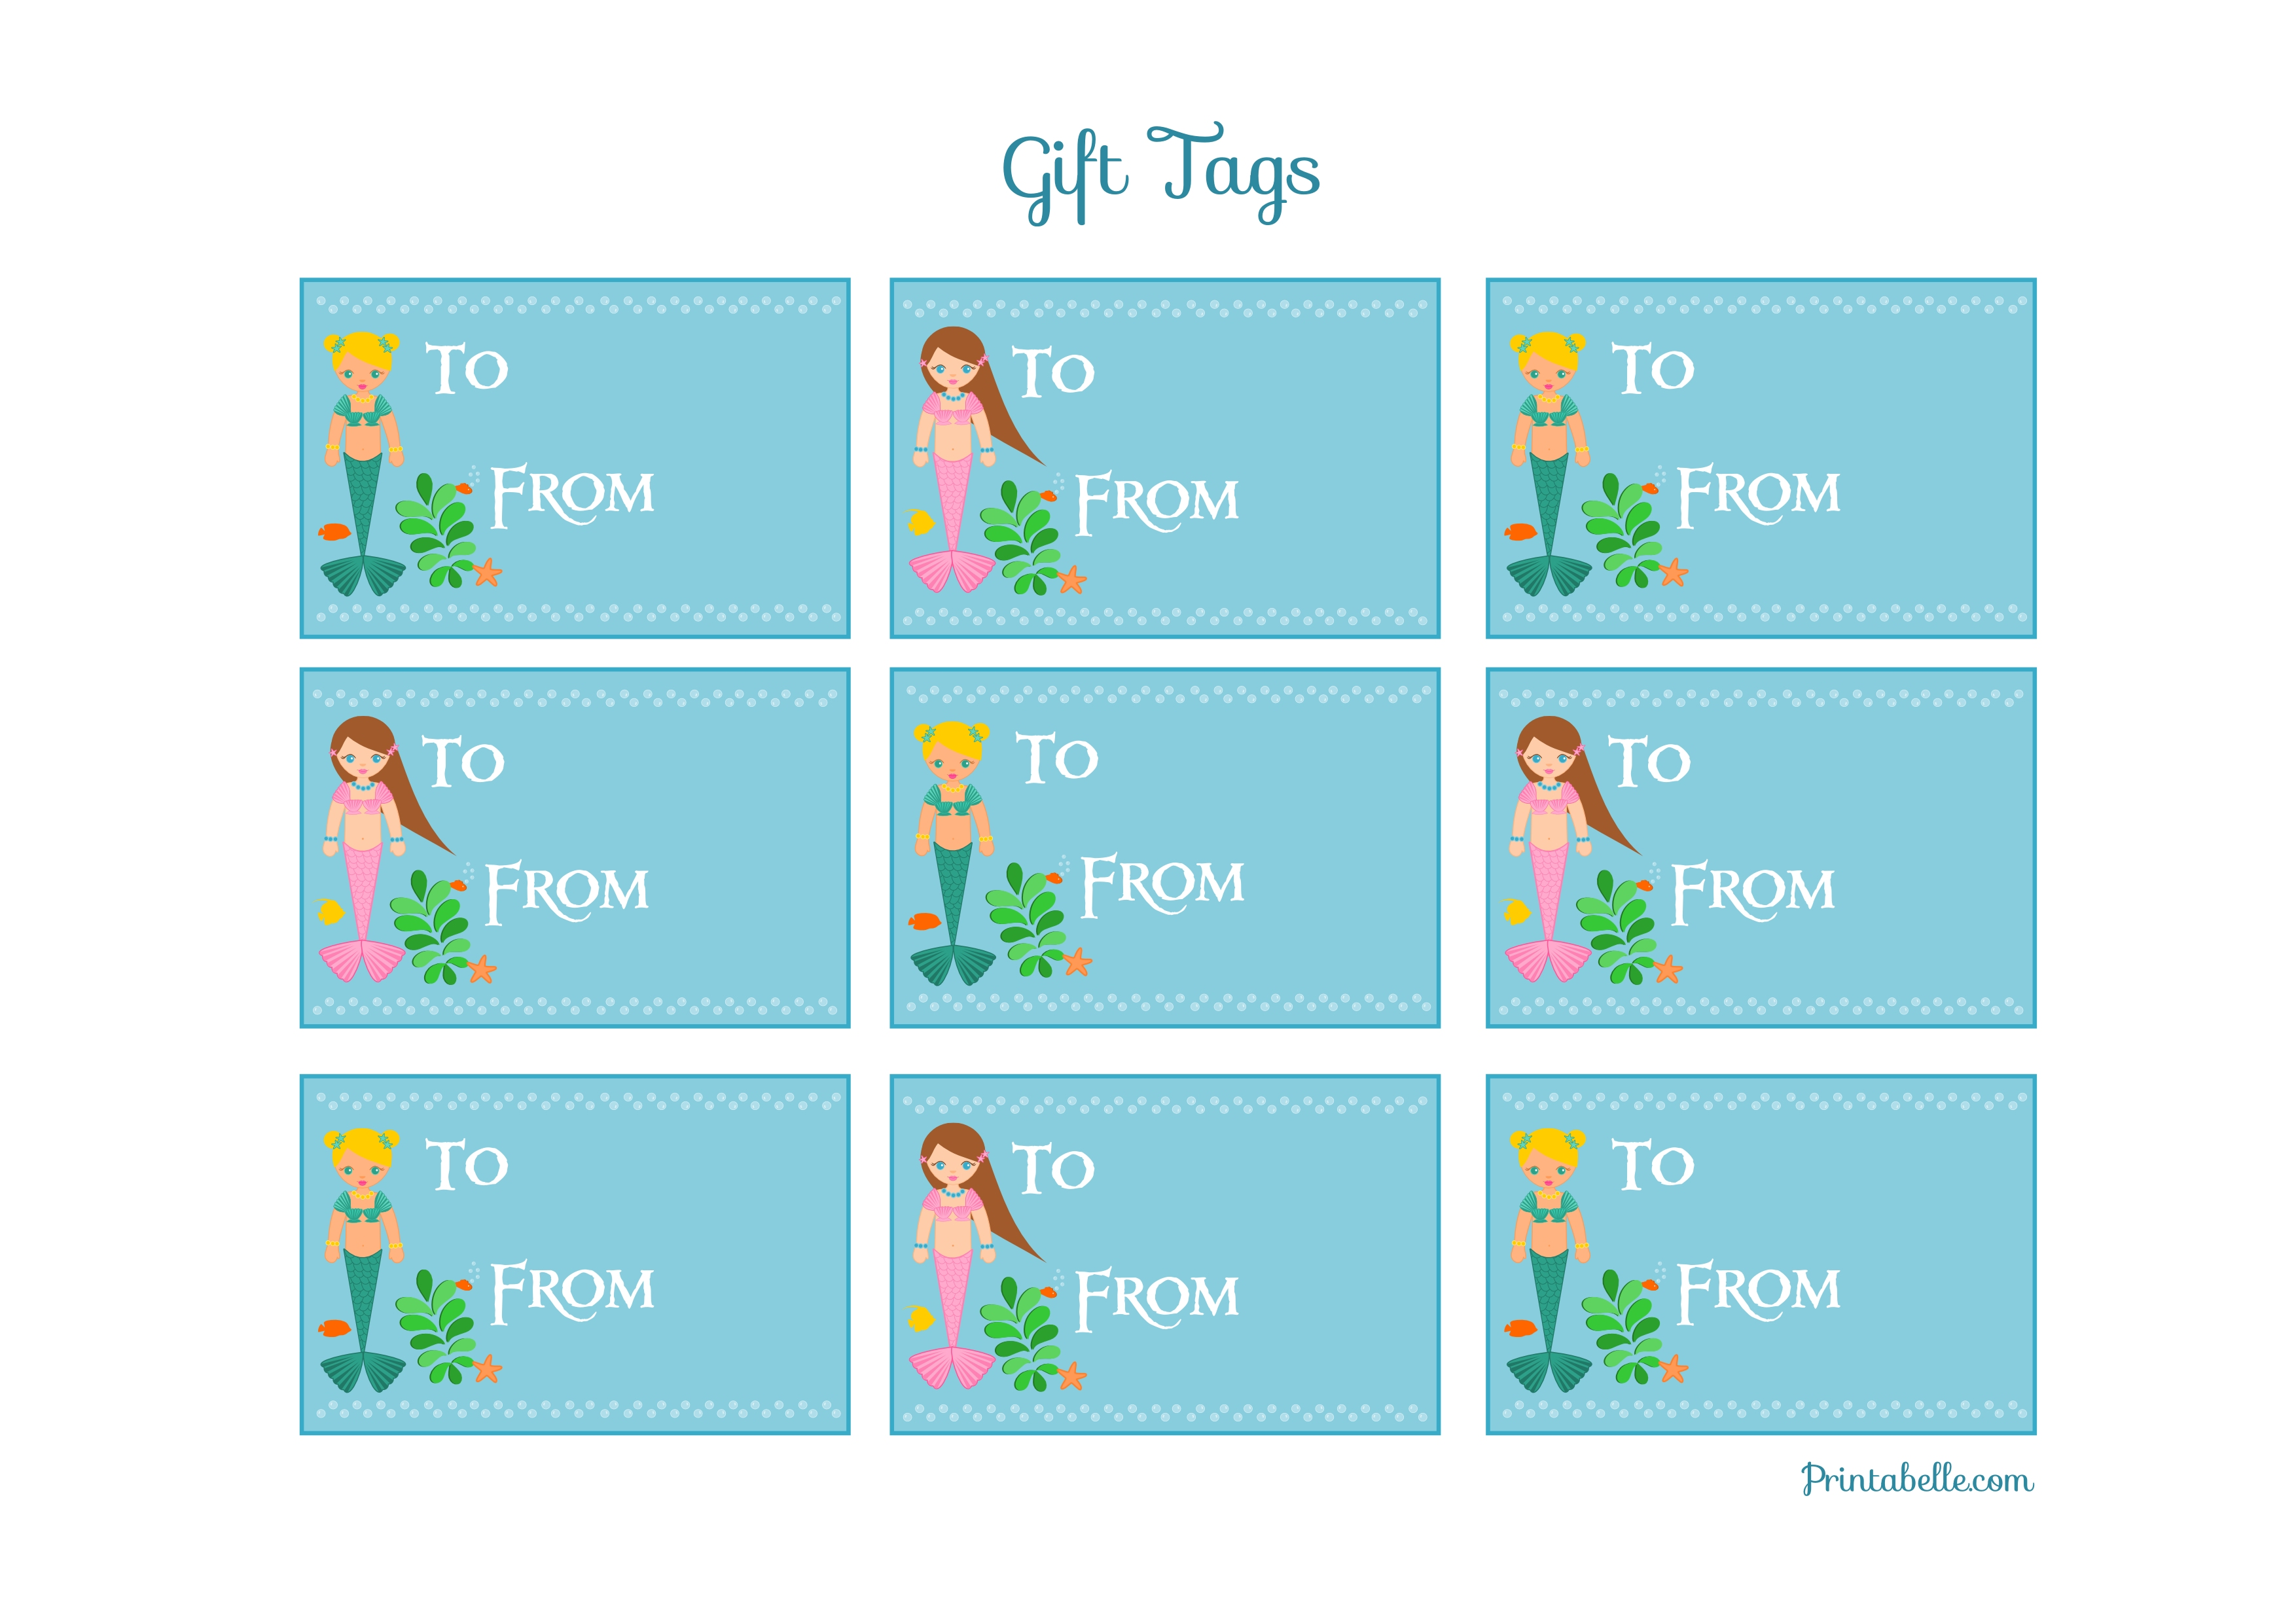 printable birthday gift tags ; free%2520personalized%2520christmas%2520gift%2520tags%2520%253B%2520free-printable-birthday-gift-tags_235337